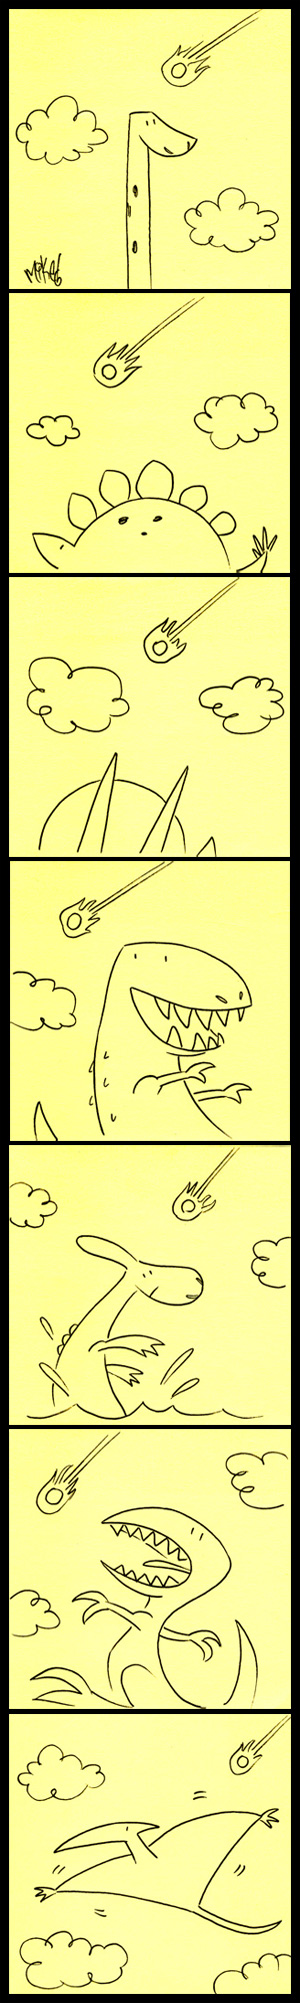 Dino Post-its by mikemaihack